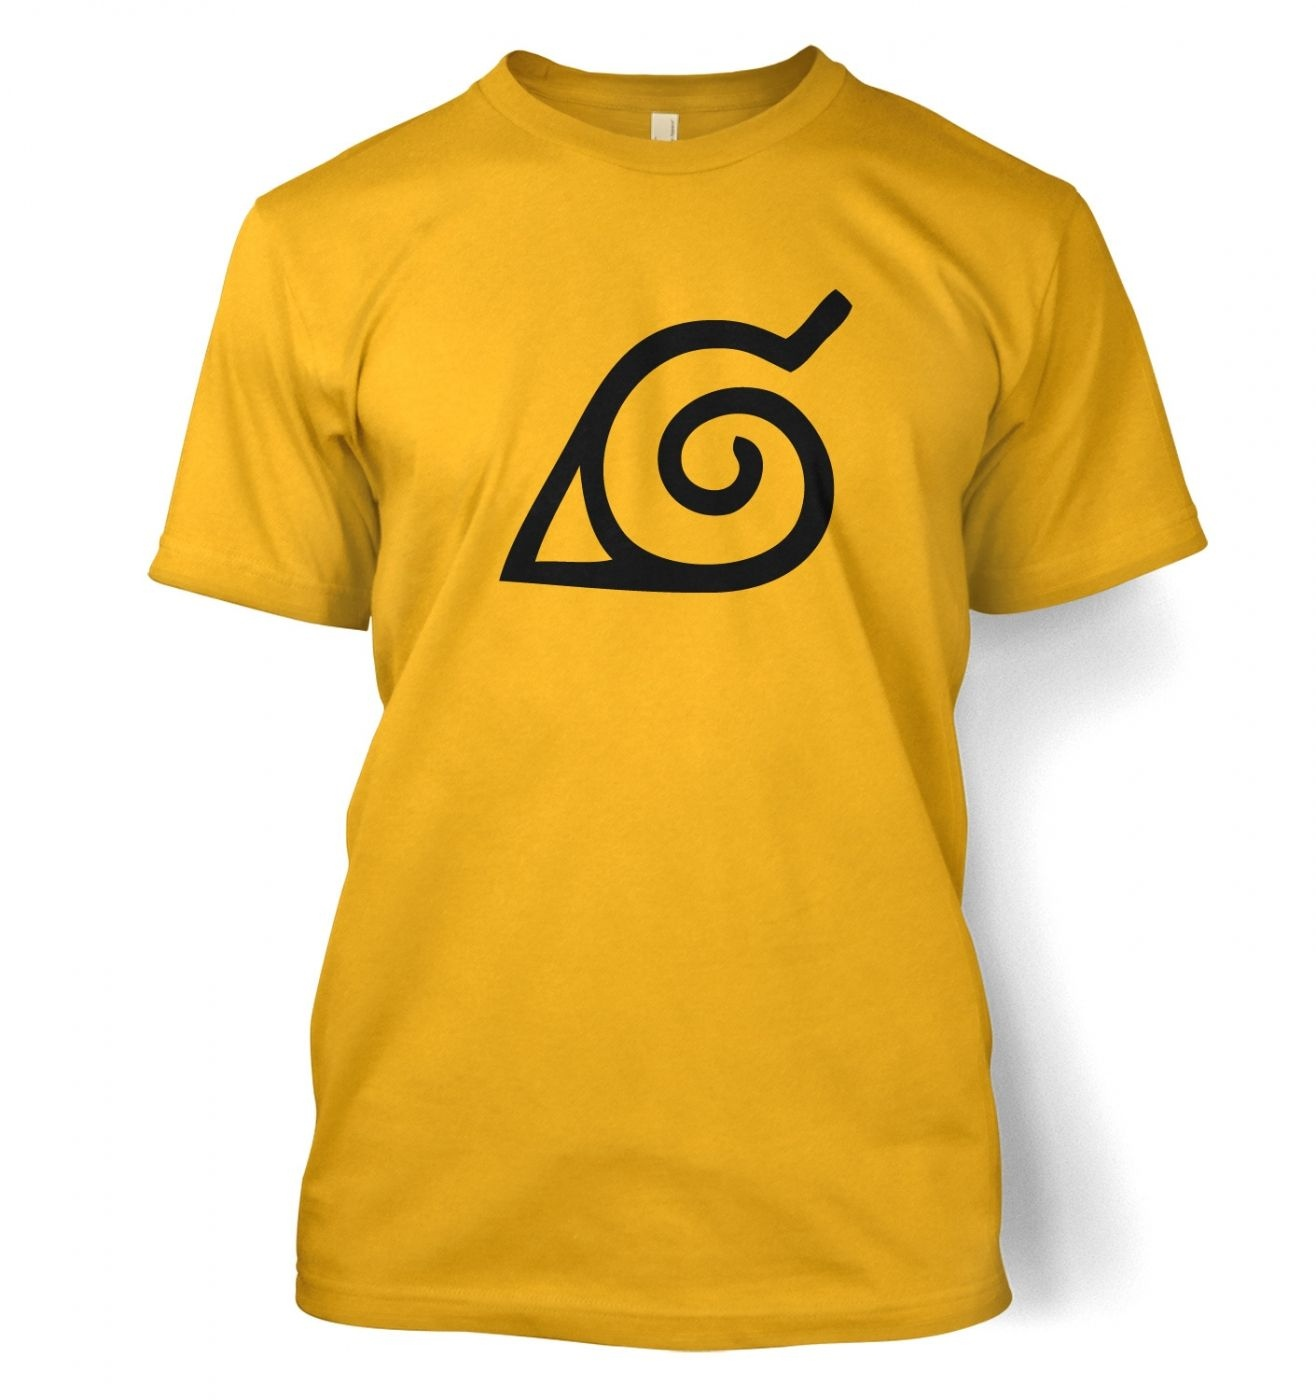 Konoha Leaf t-shirt